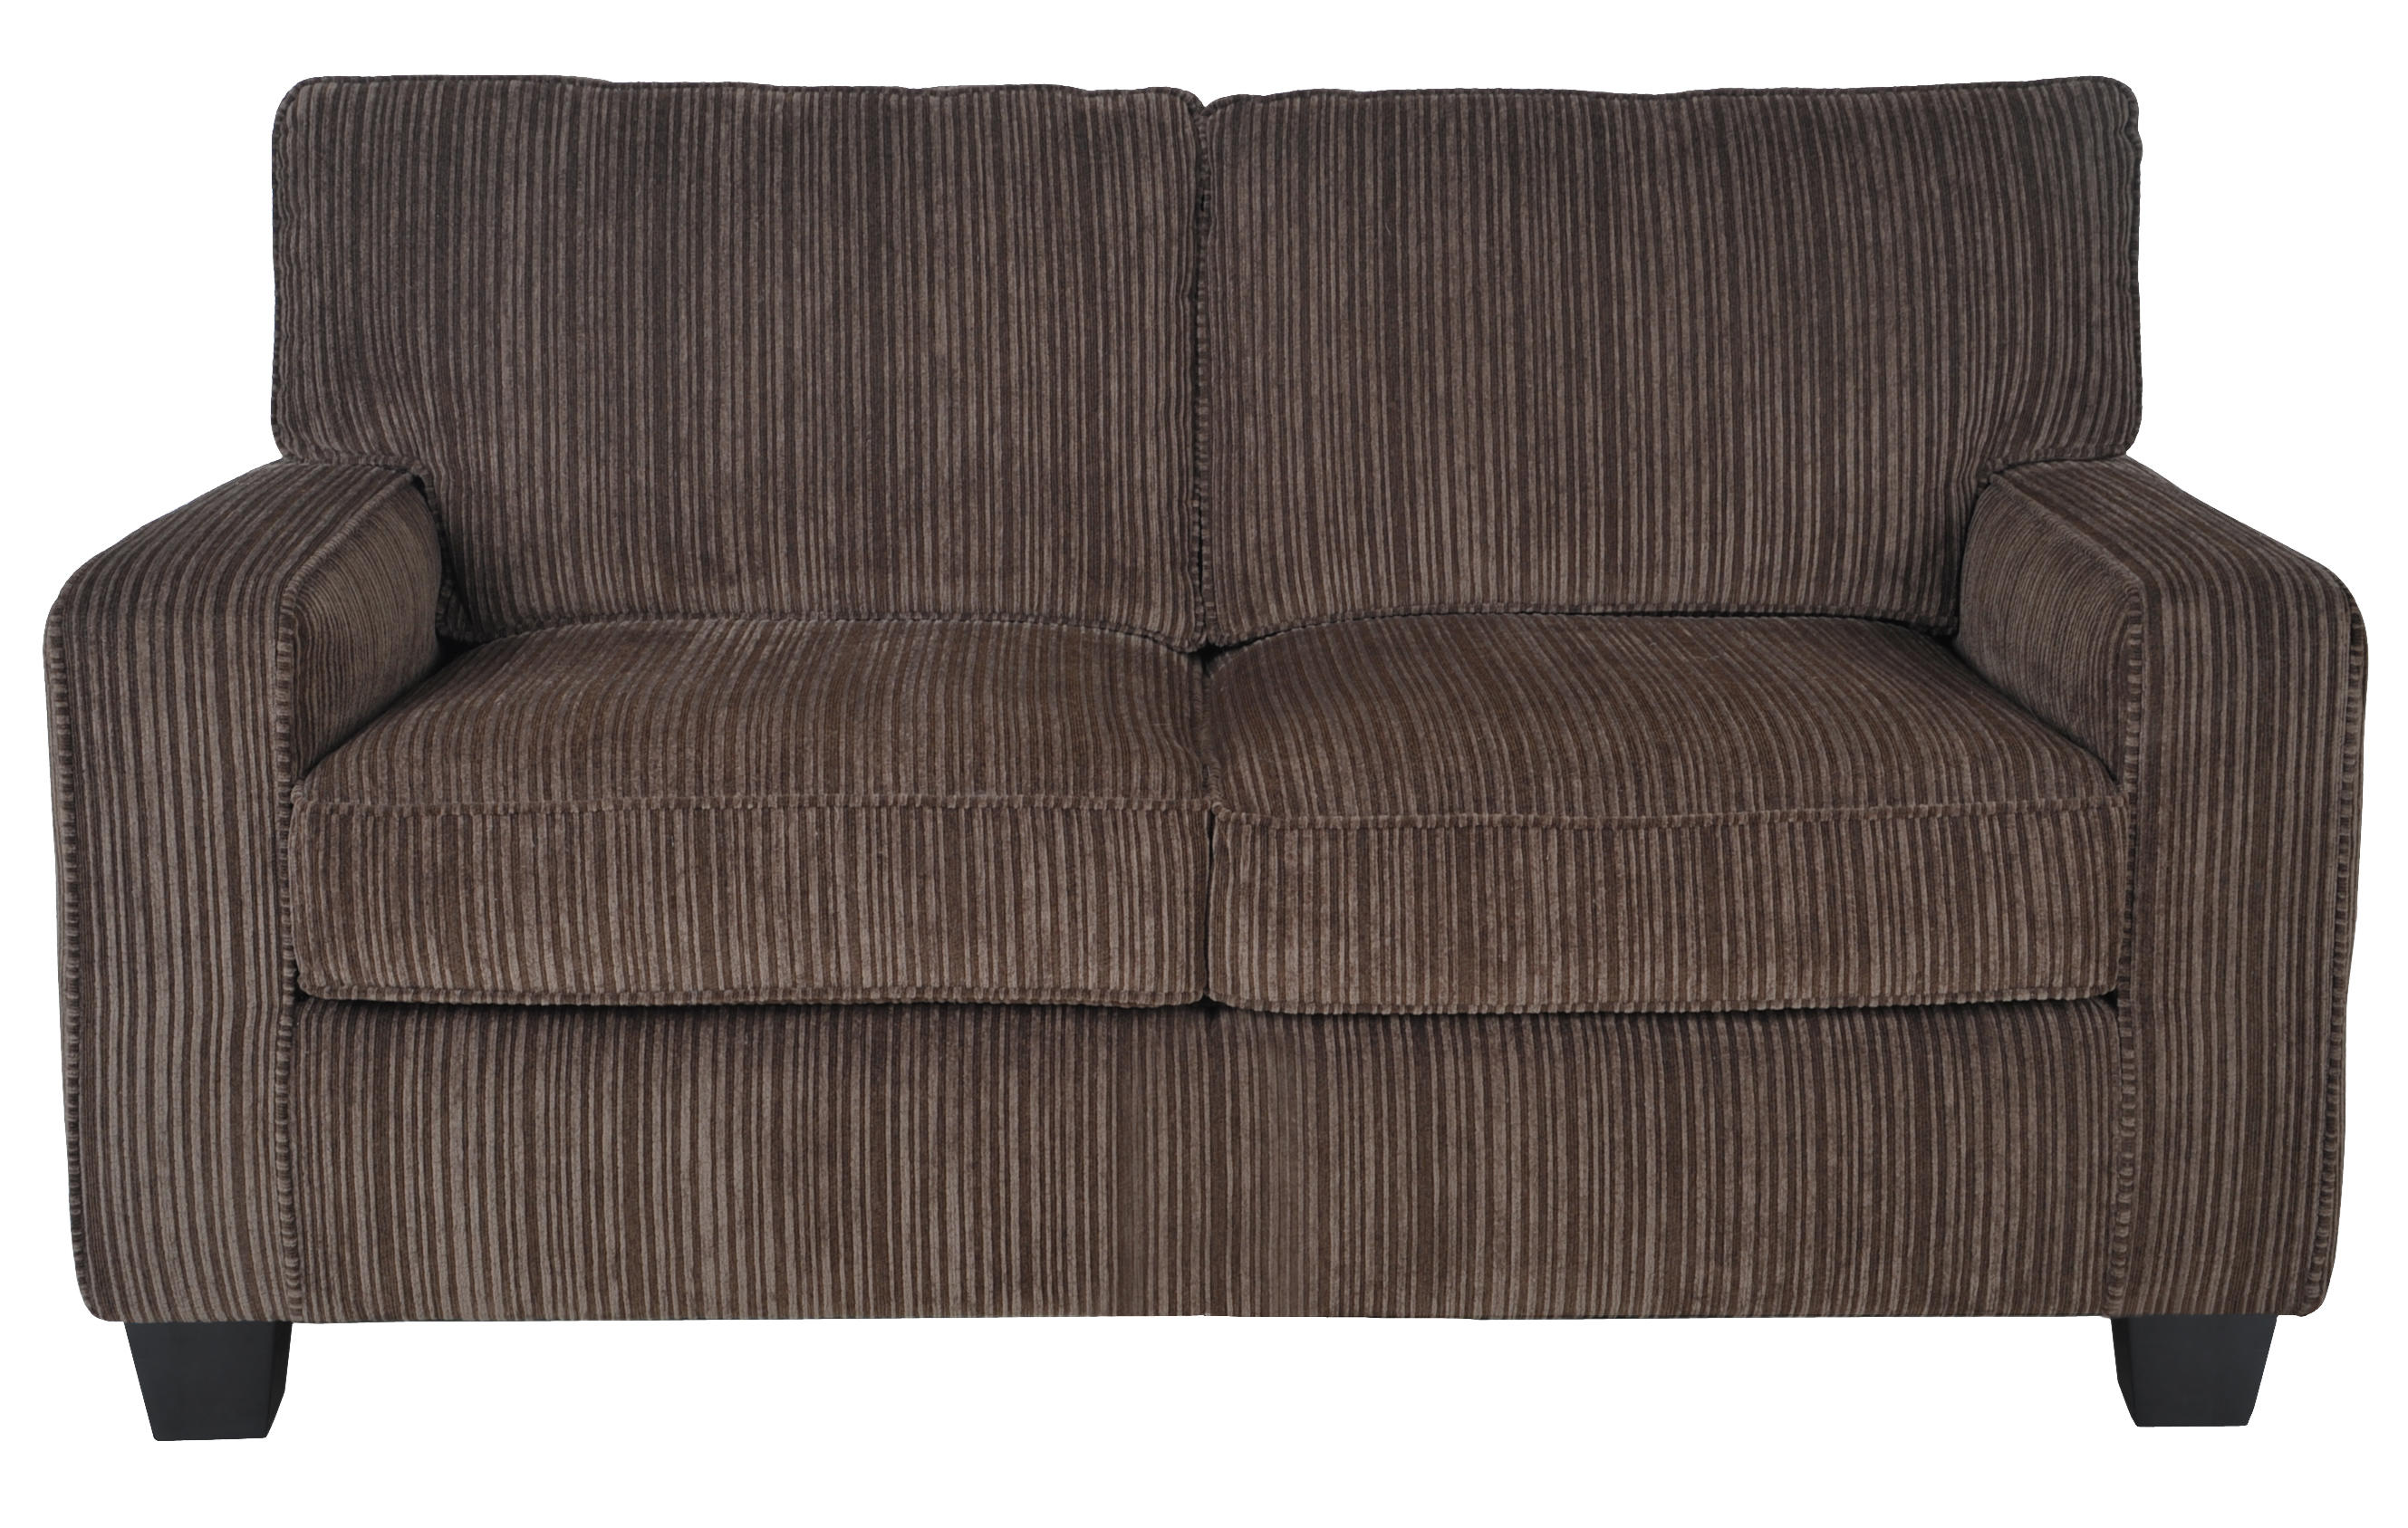 """Serta Palisades 61"""" Loveseat in Chestnut by Millwork Holdings Co., Inc."""